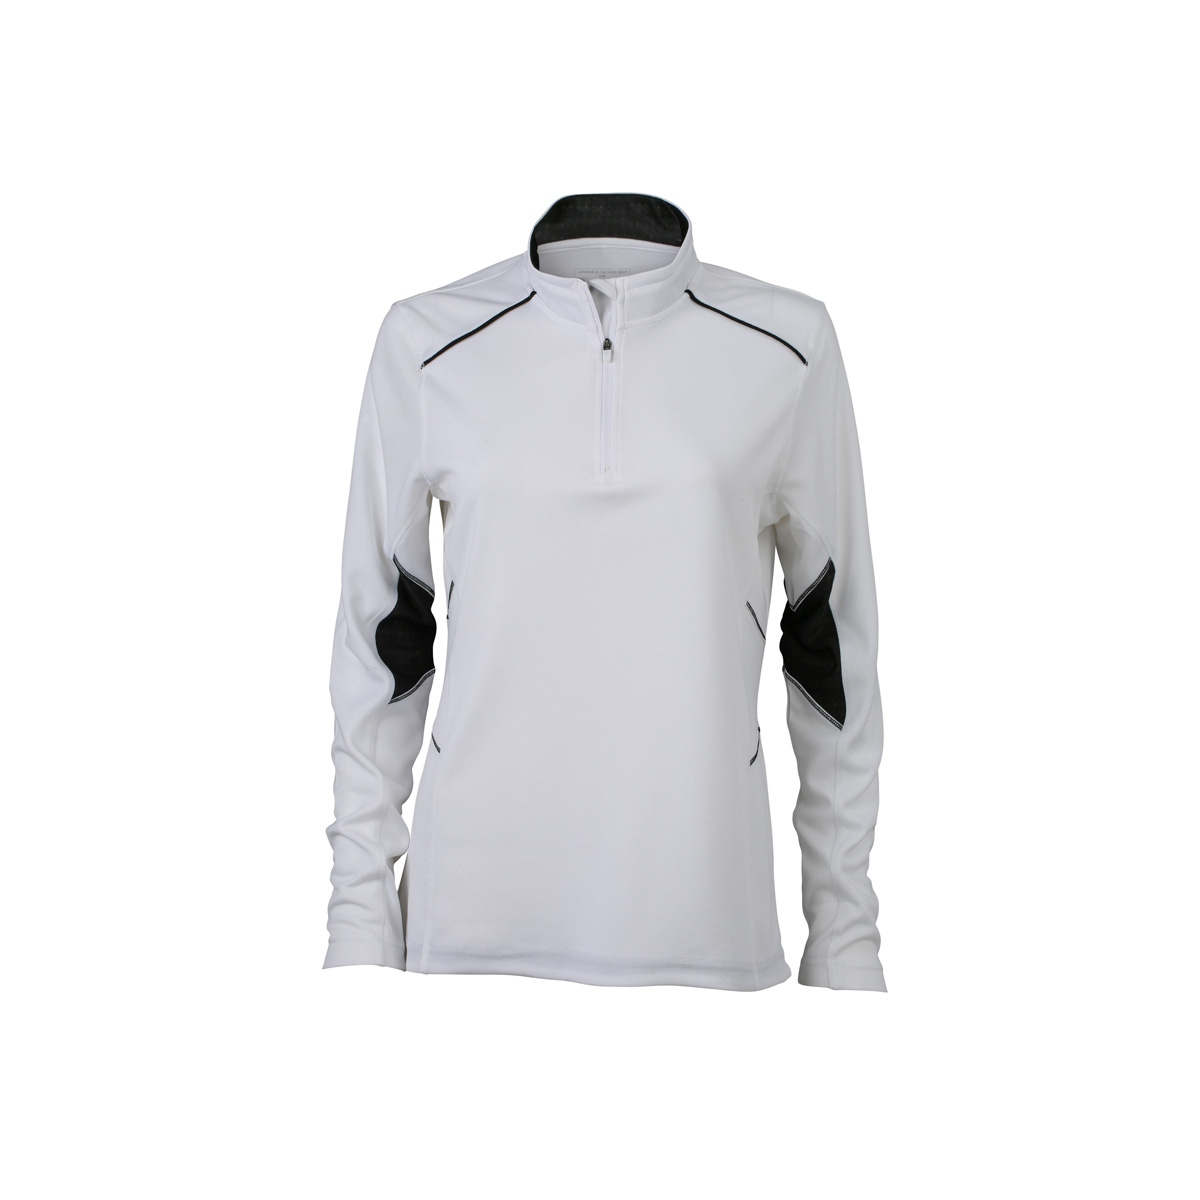 Pied Femme Shirt Course Jogging Running T Jn473 À Respirant Manches Longues Blanc pUzSMV